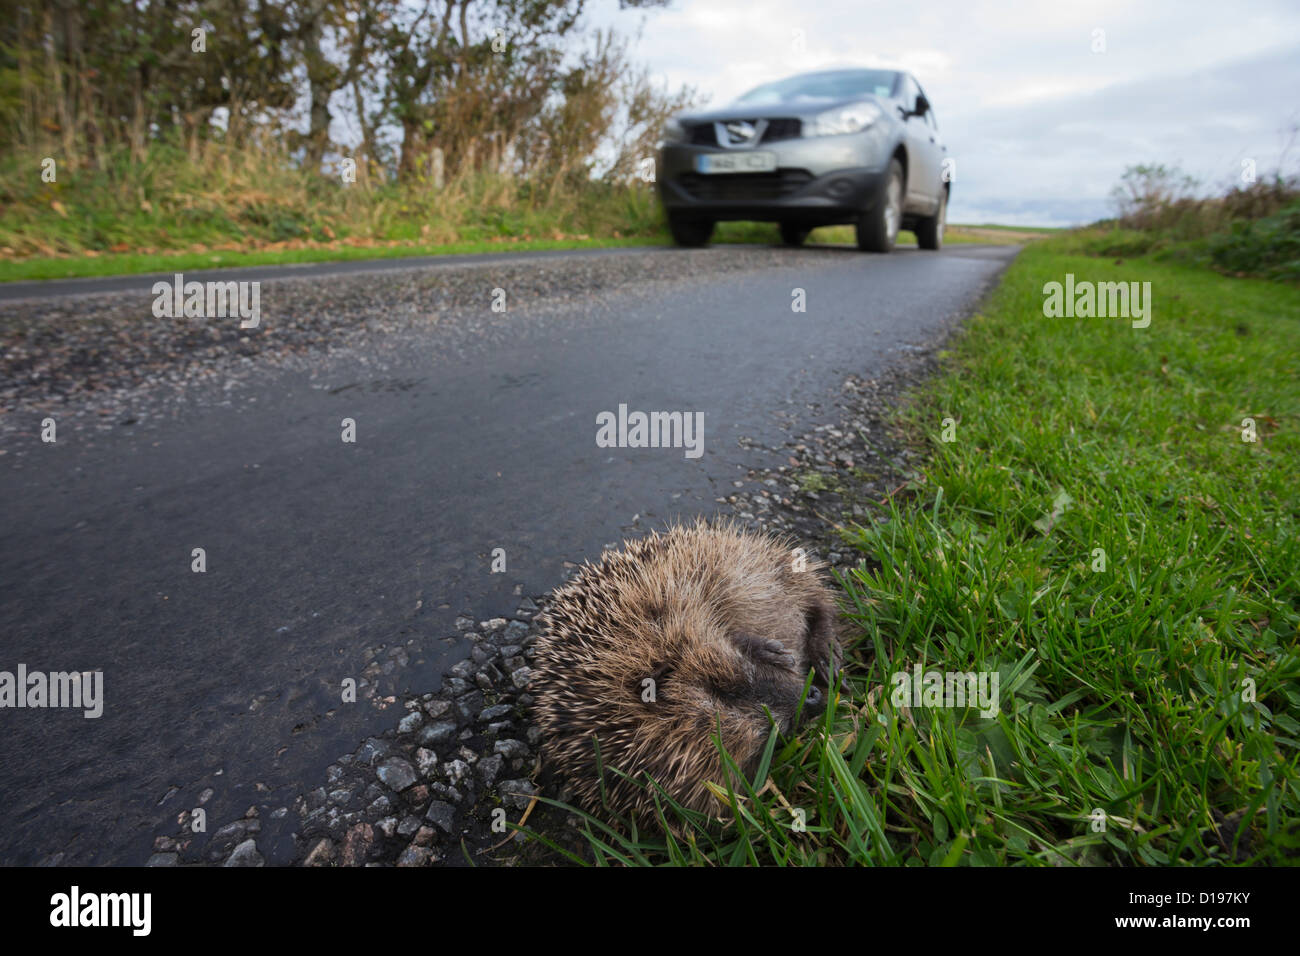 Hedgehog (Erinaceus europaeus), dead on the side of the road, UK, Islay, Scotland, October 2012 - Stock Image